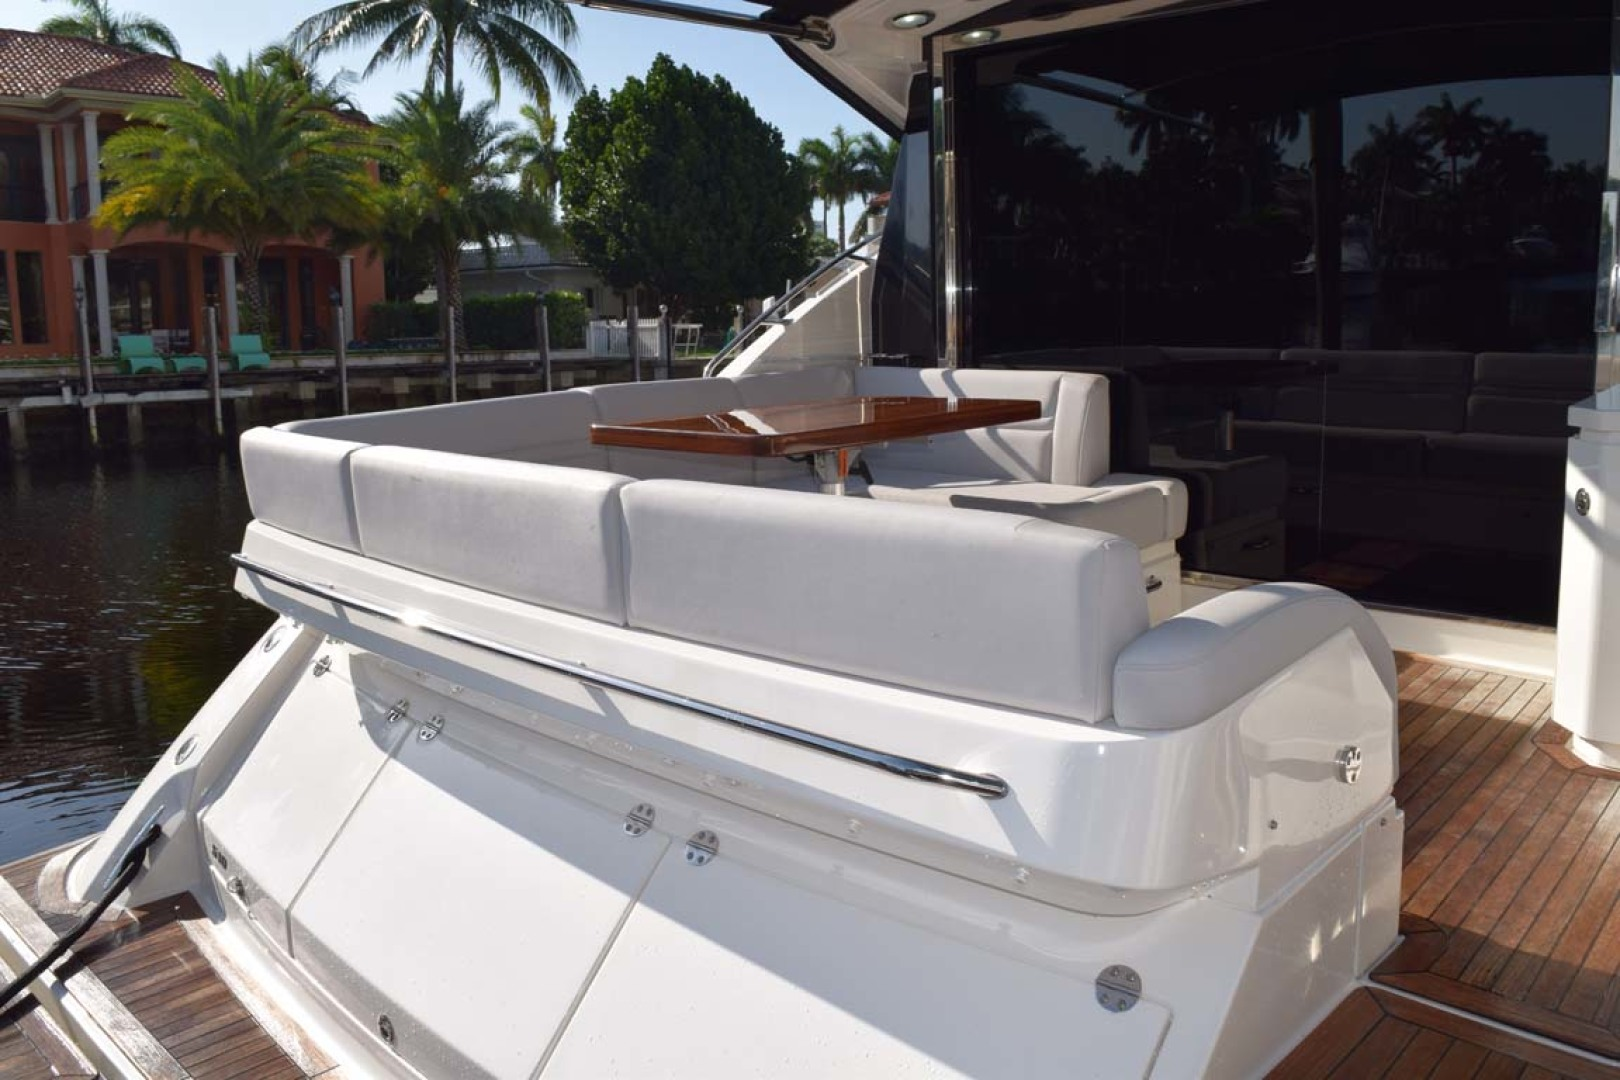 Sea Ray-510 Sundancer 2015 -Ft Lauderdale-Florida-United States-Aft Deck View Into Aft Seating From Swim Platform-1189916 | Thumbnail